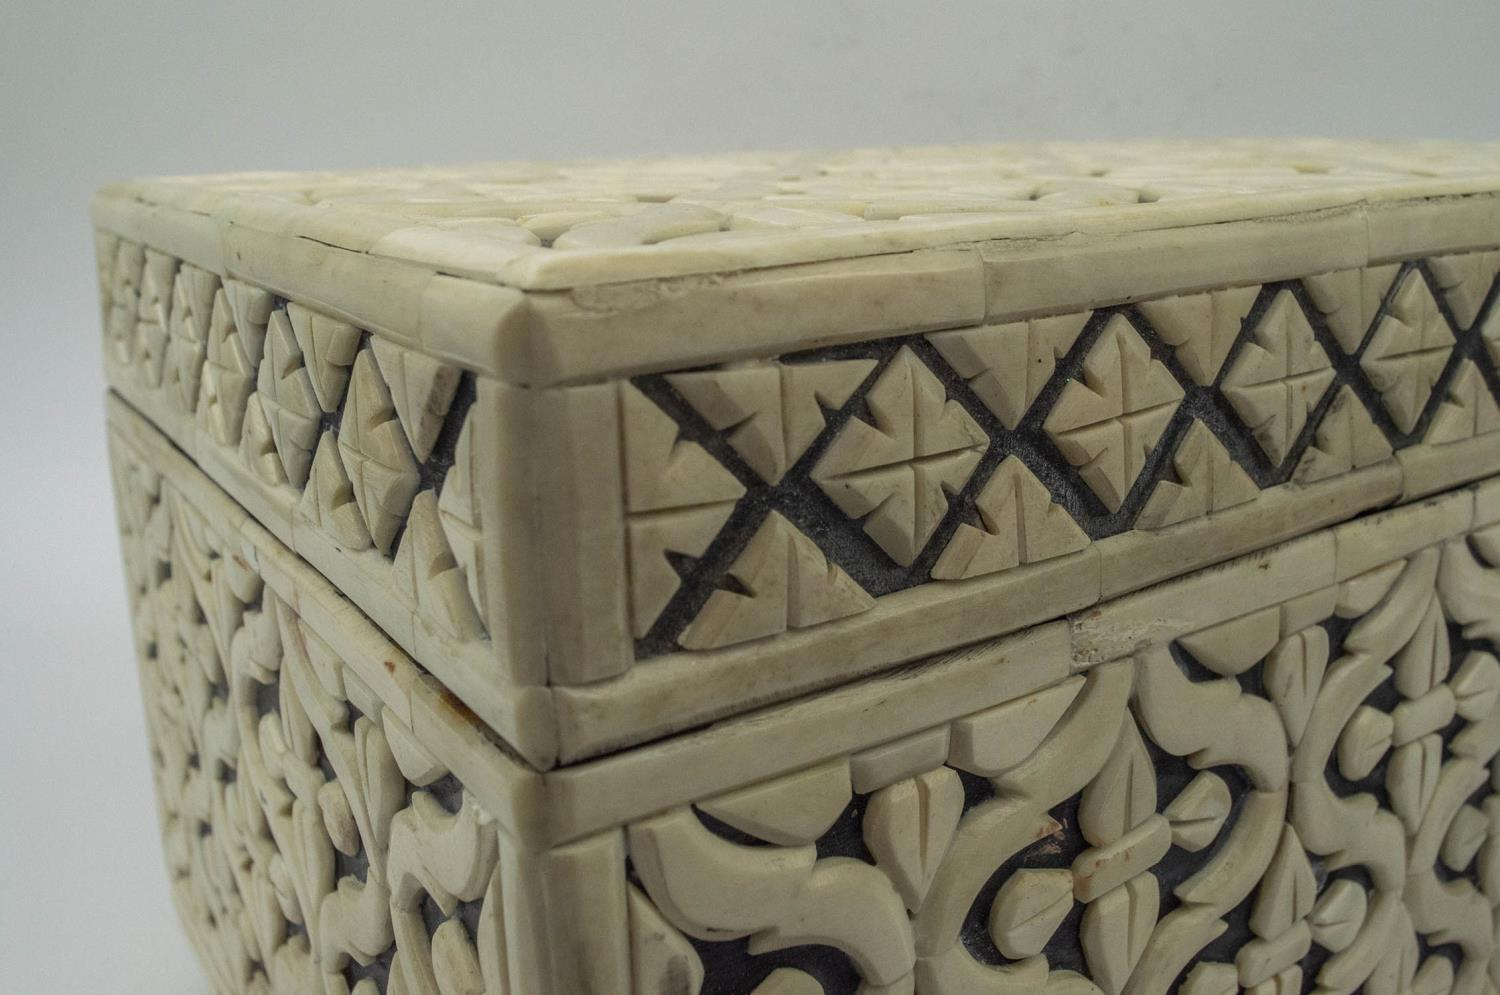 CASKET, bone geometric clad with hinged top and interior tray, 22cm H x 38cm x 25cm. - Image 5 of 7